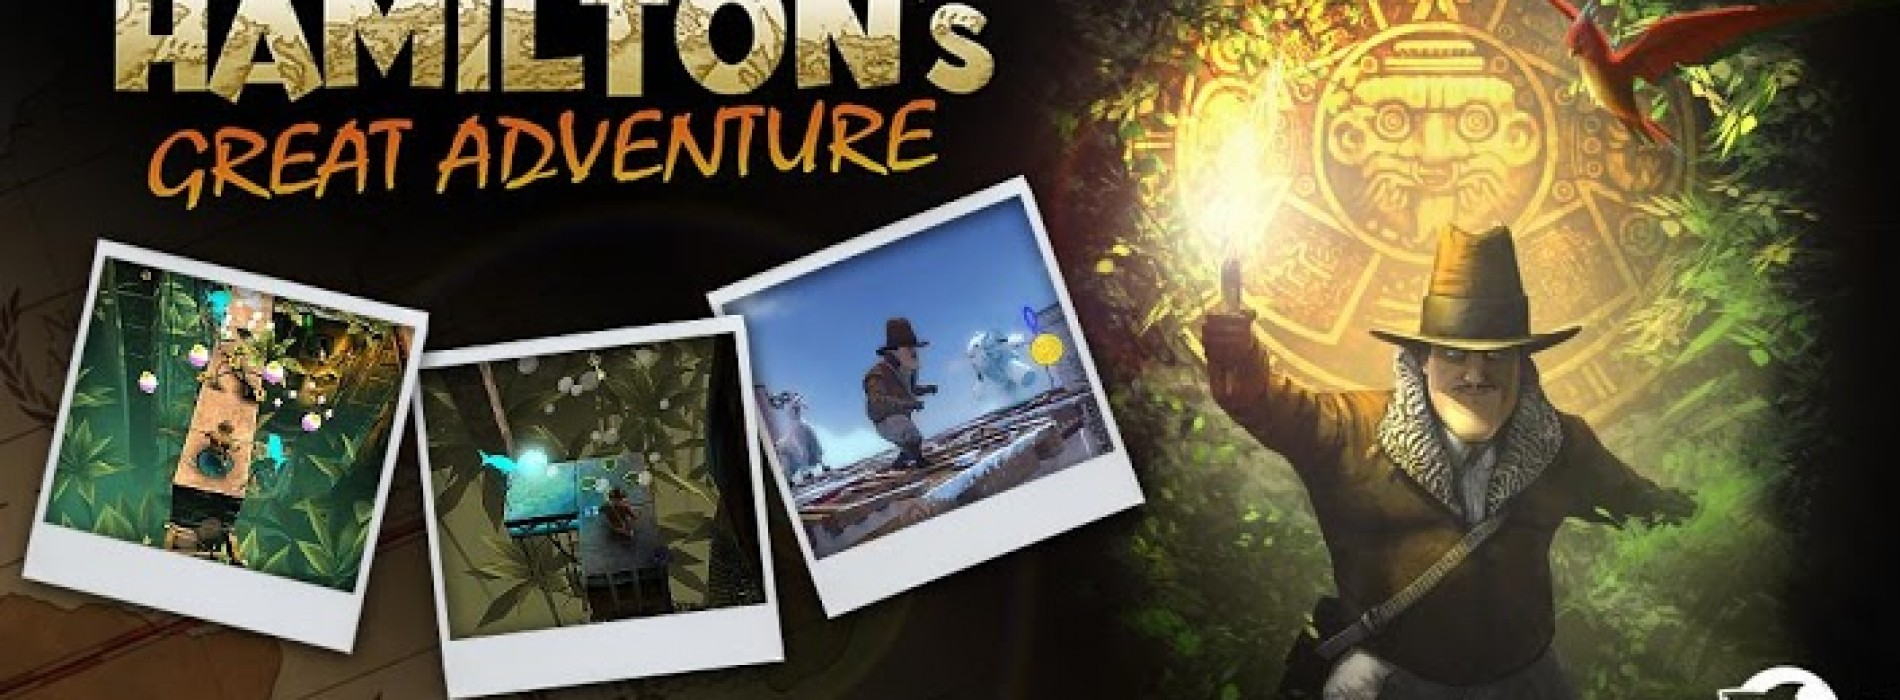 Hamilton's Great Adventure is action puzzler for the Tegra 3 crowd